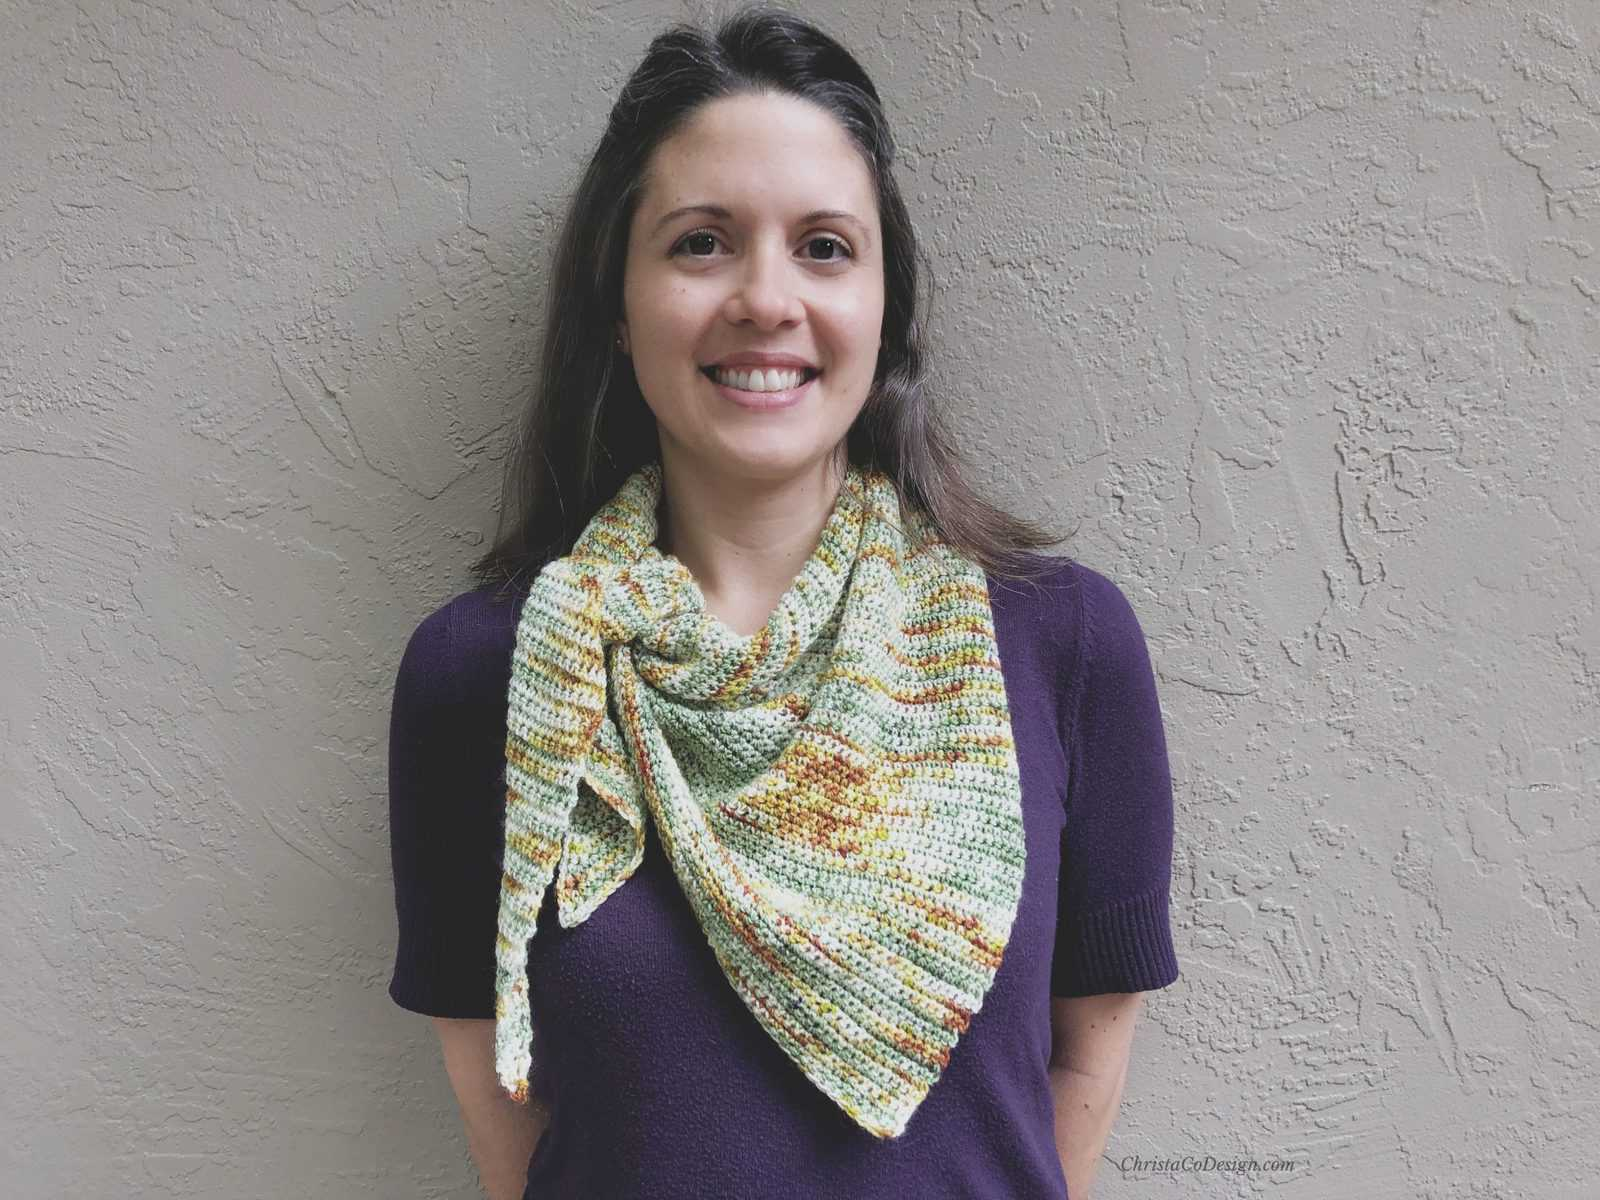 Picture of woman smiling in triangle scarf